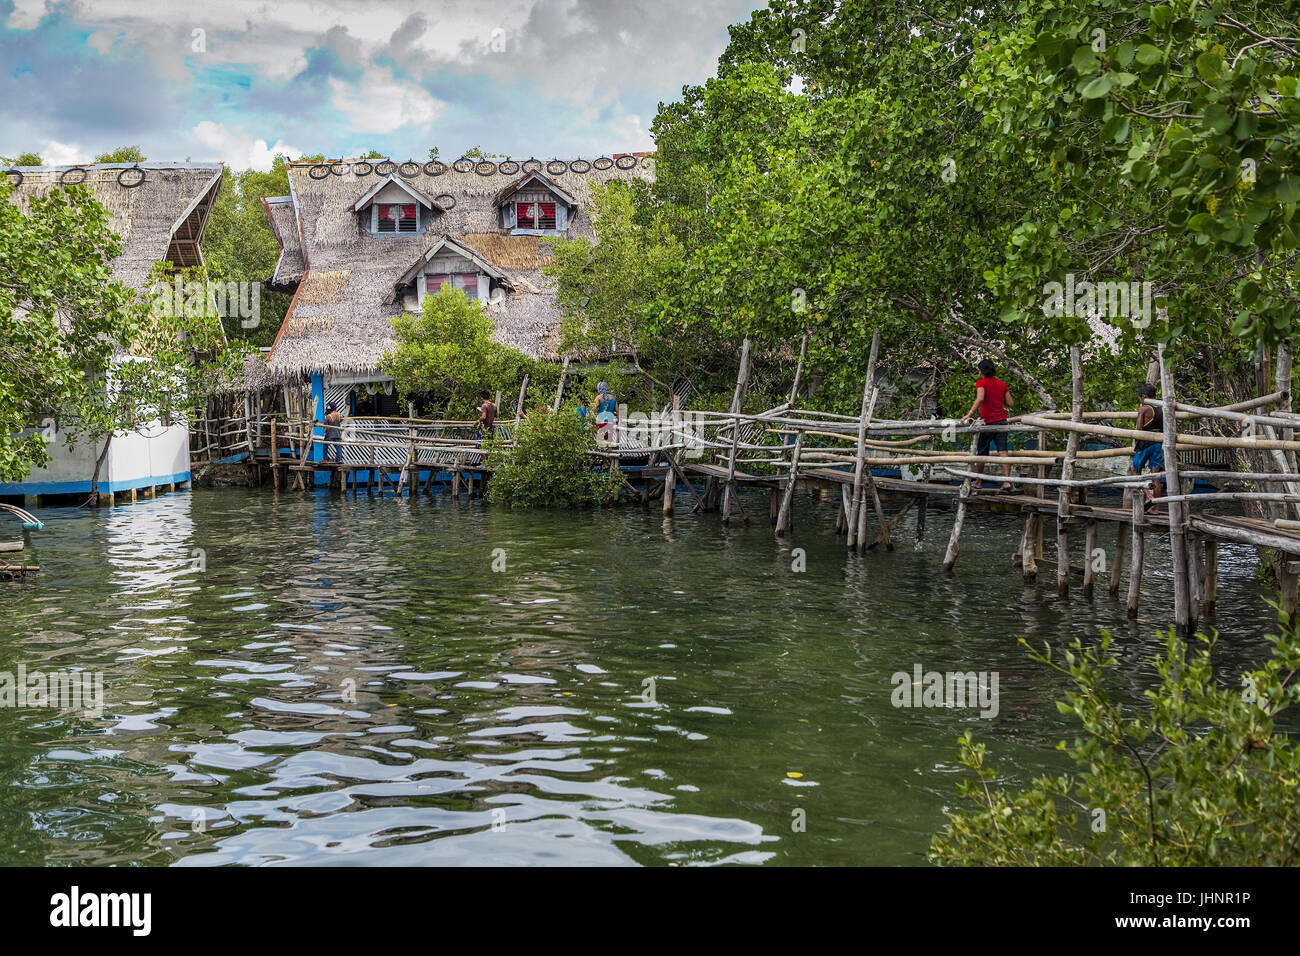 Footbridge across open water in a mangrove forest leads to a traditional thatch-roofed Filipino home. - Stock Image